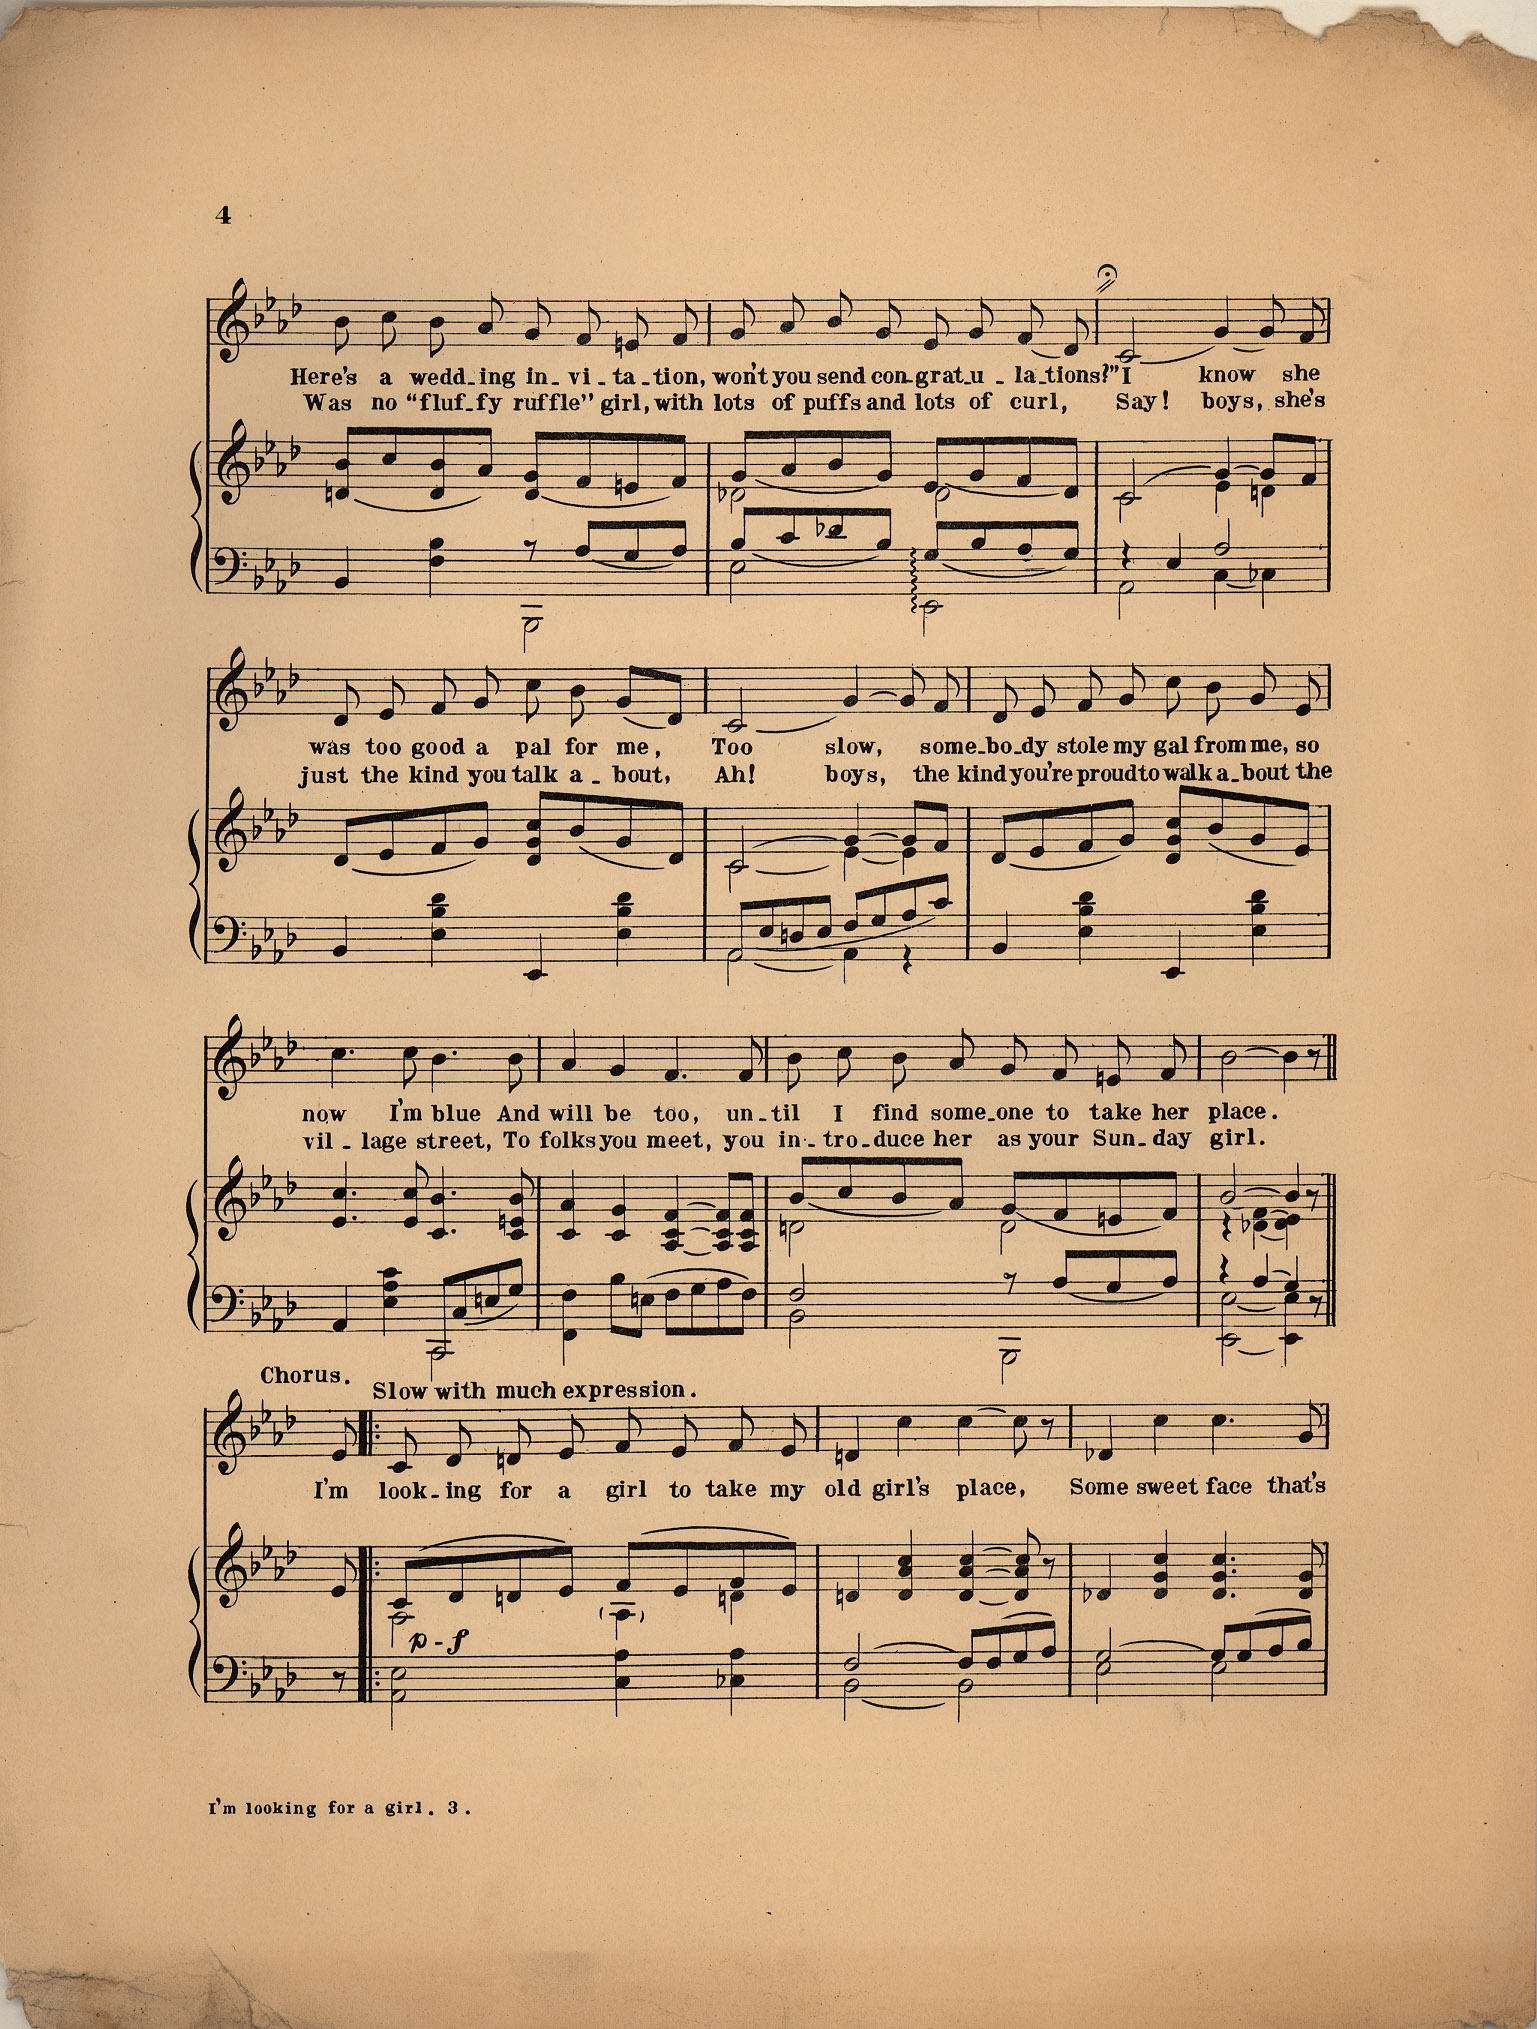 I M Looking For A Girl To Take My Old Girl S Place Historic American Sheet Music